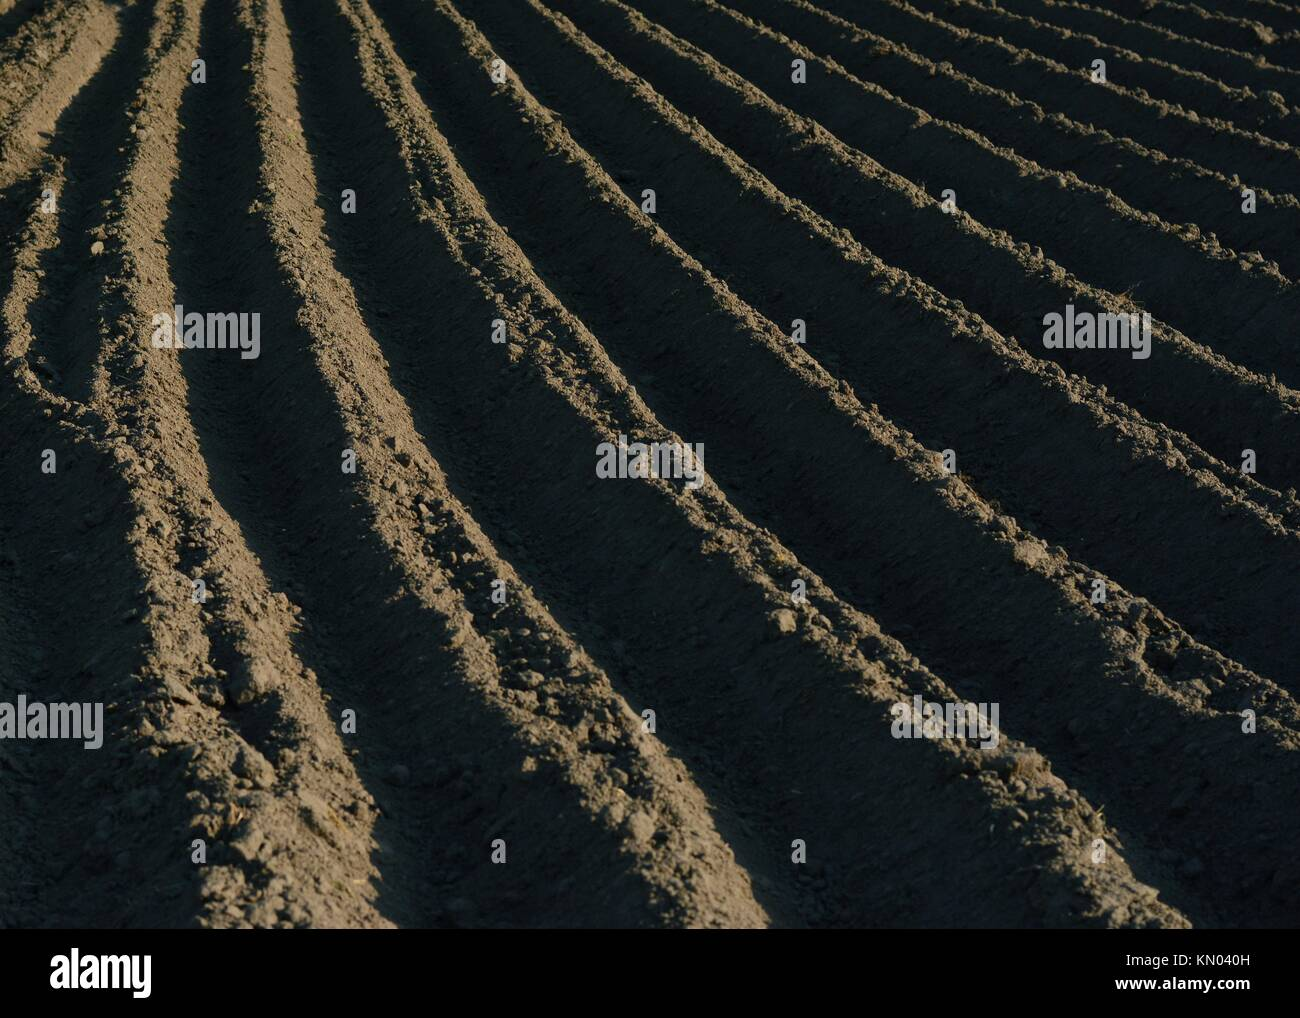 A piece of tilled black-soil field ready for potato planting in Ukraine, Chernihiv region Stock Photo